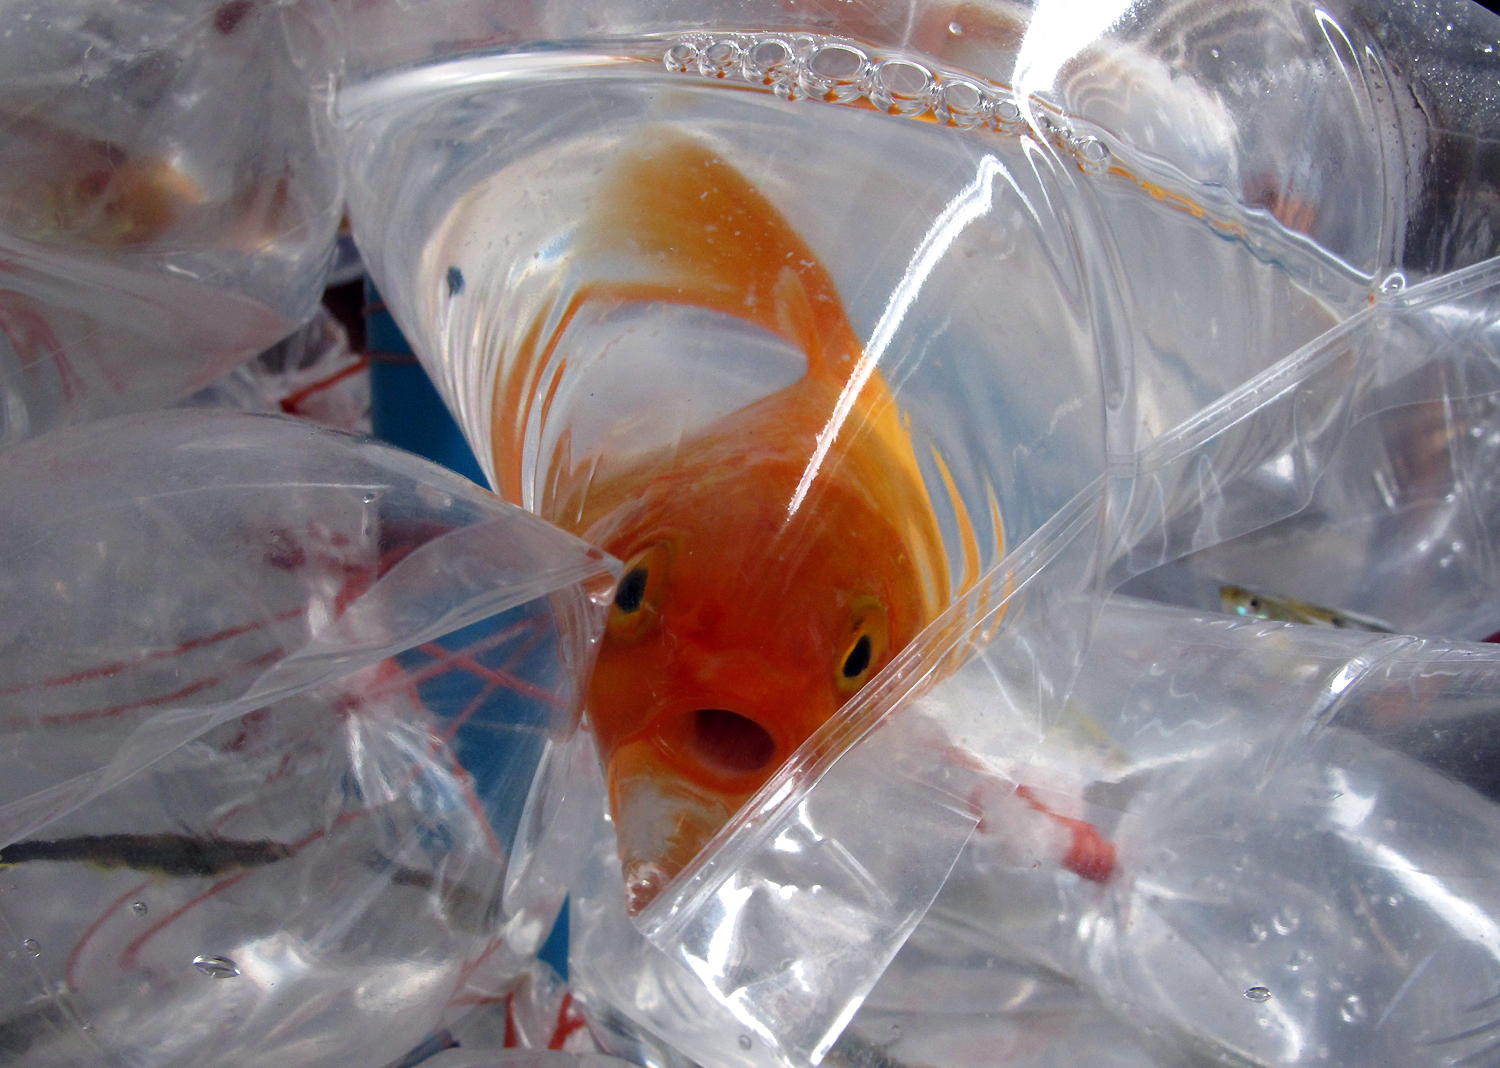 epa02641379 An aquarium fish opens its mouth wide as it swims in a plastic bag, tied to many other fish in water-filled plastic bags that are attached to a stick and for sale, by a Thai street seller (not pictured), in Bangkok, Thailand, 19 March 2011. Each fish costs about 50 euro cents. Since the 1970s, fisheries have skyrocketed to unprecedented levels of production and 70 per cent of the world's wild fish species are either fully exploited or depleted. EPA/BARBARA WALTON